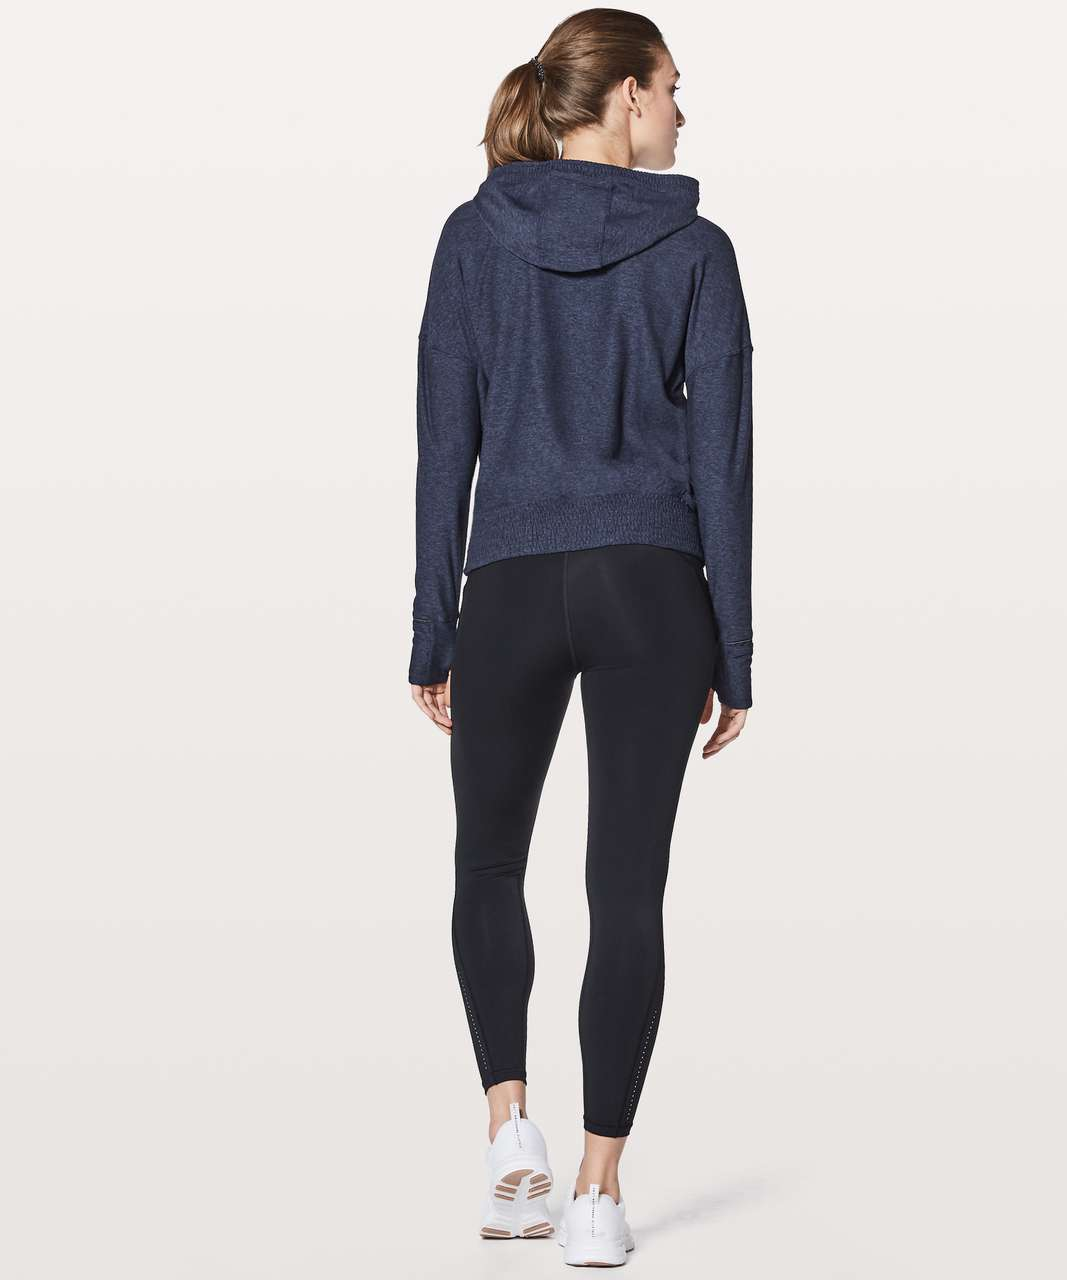 Lululemon Lead The Pack Hoodie - Heathered Stony Grape / Black